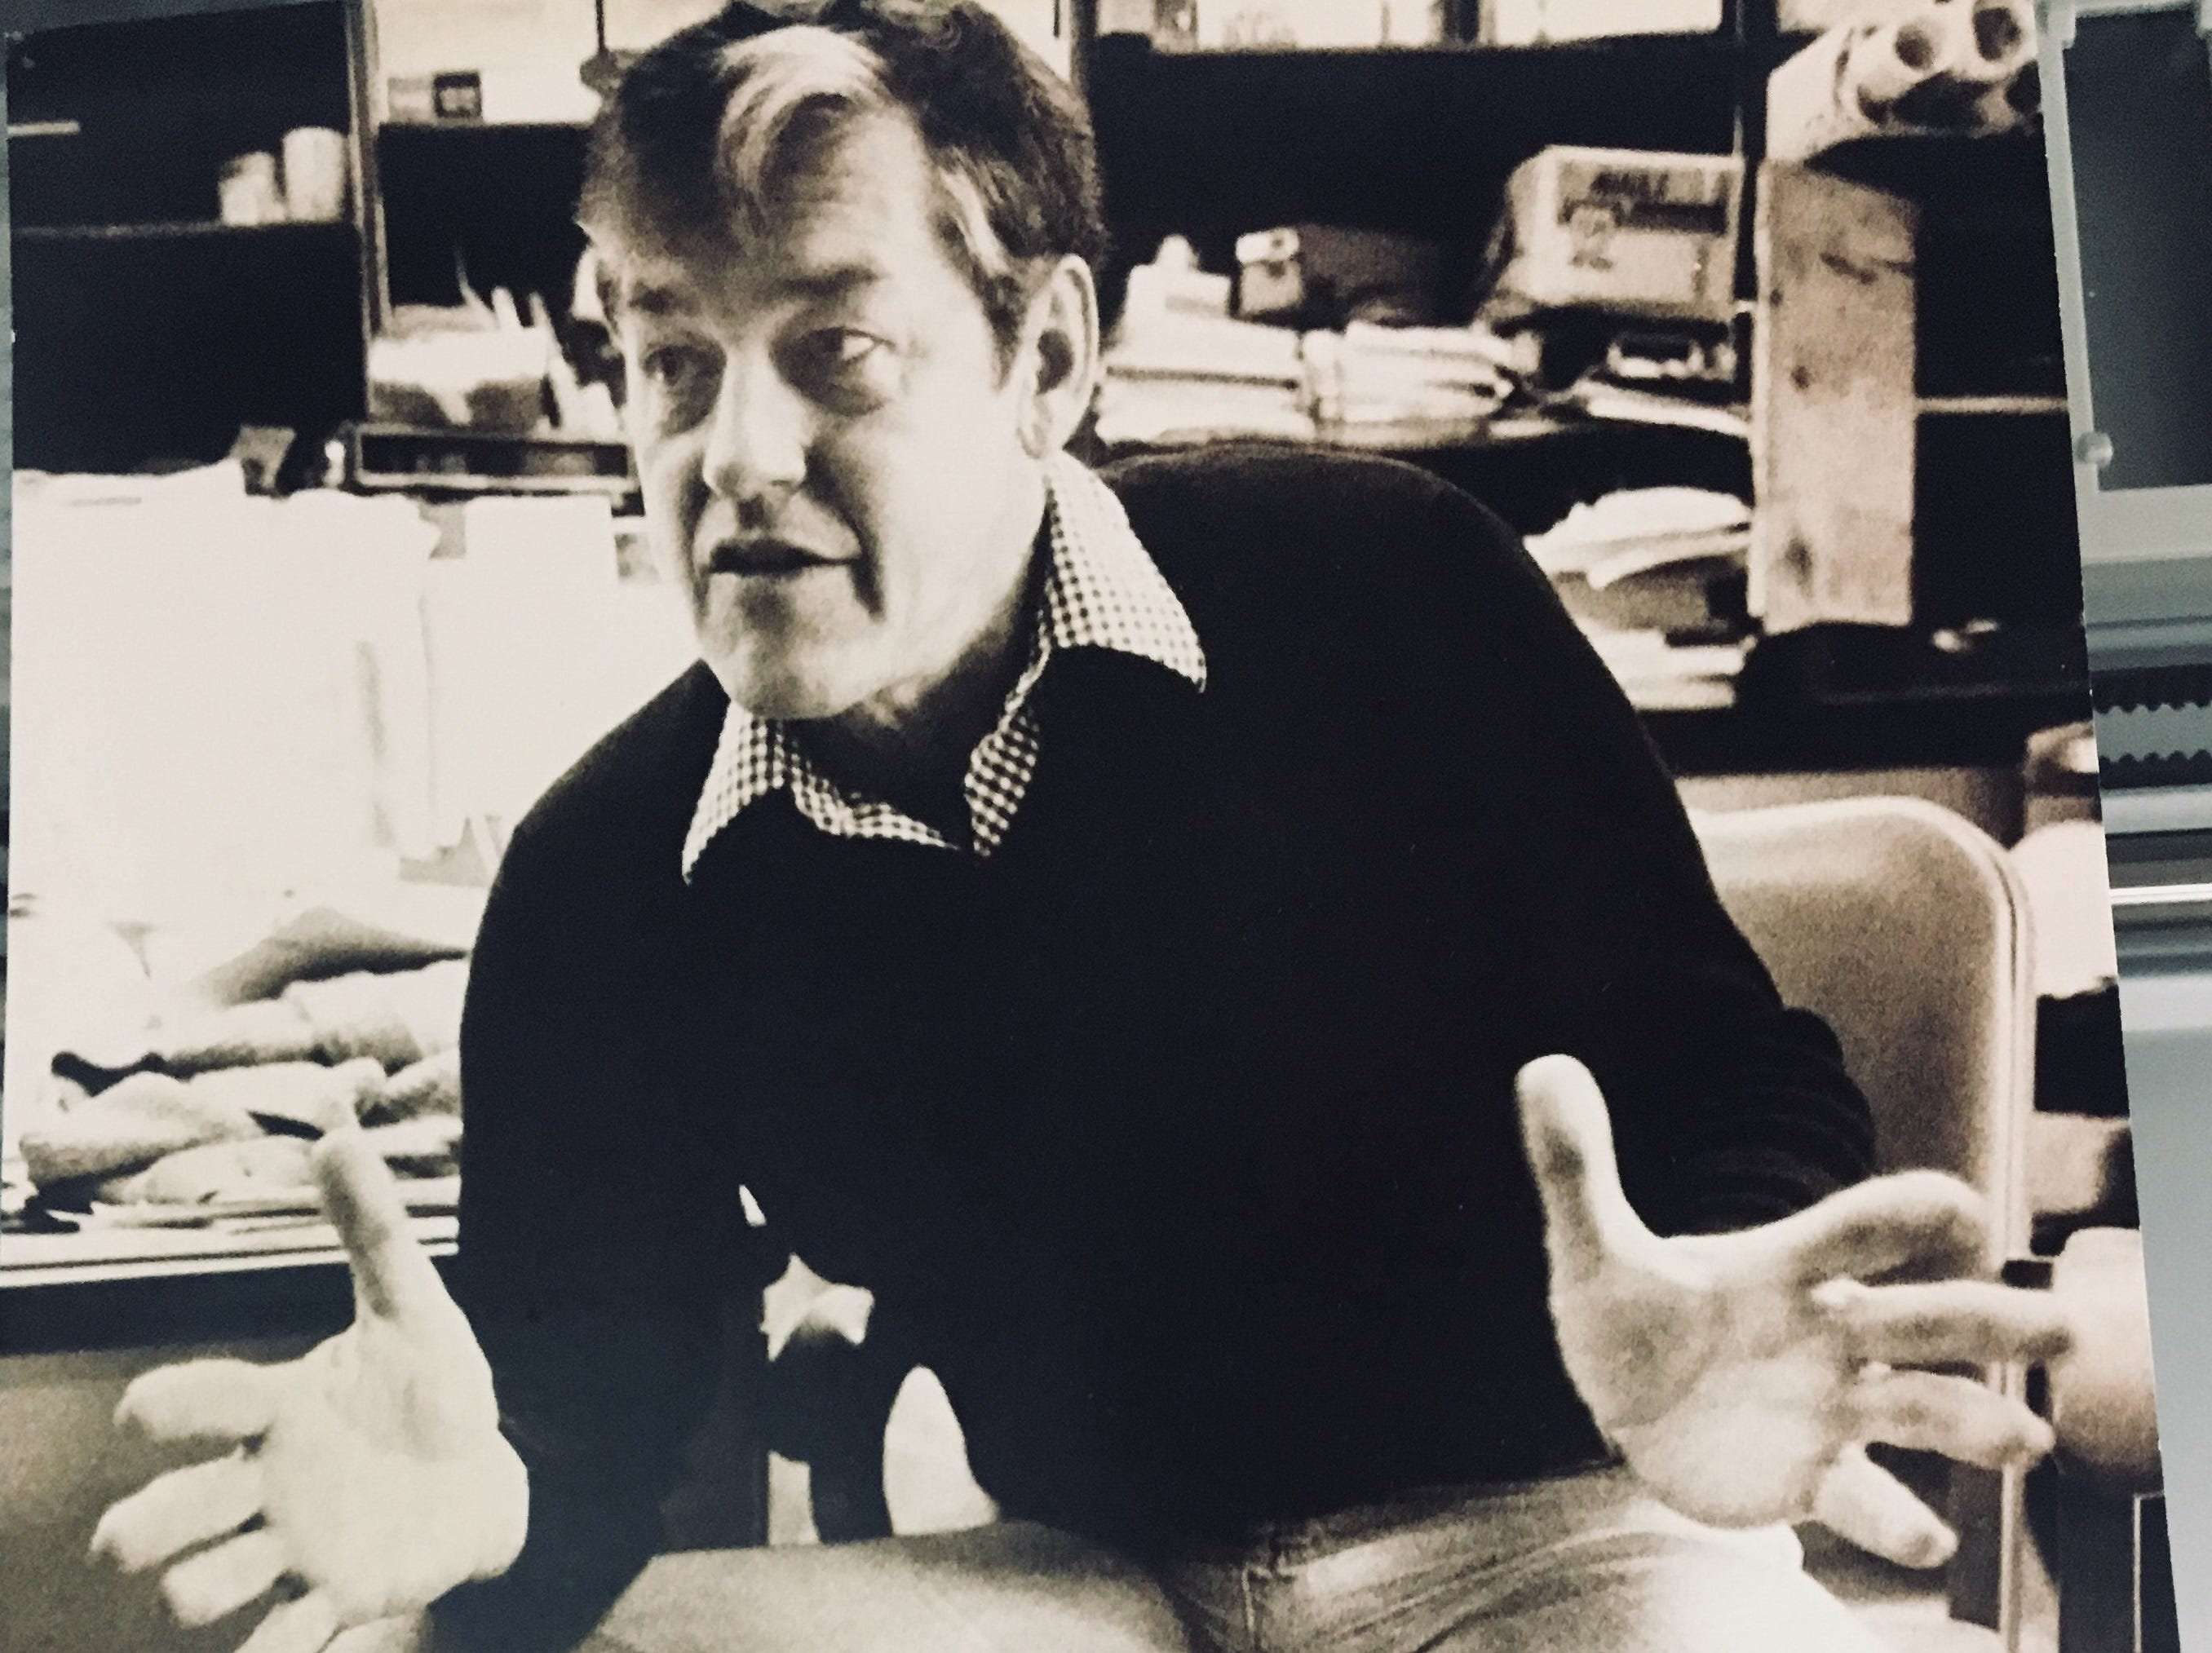 Byrne Blackwood in 1982.